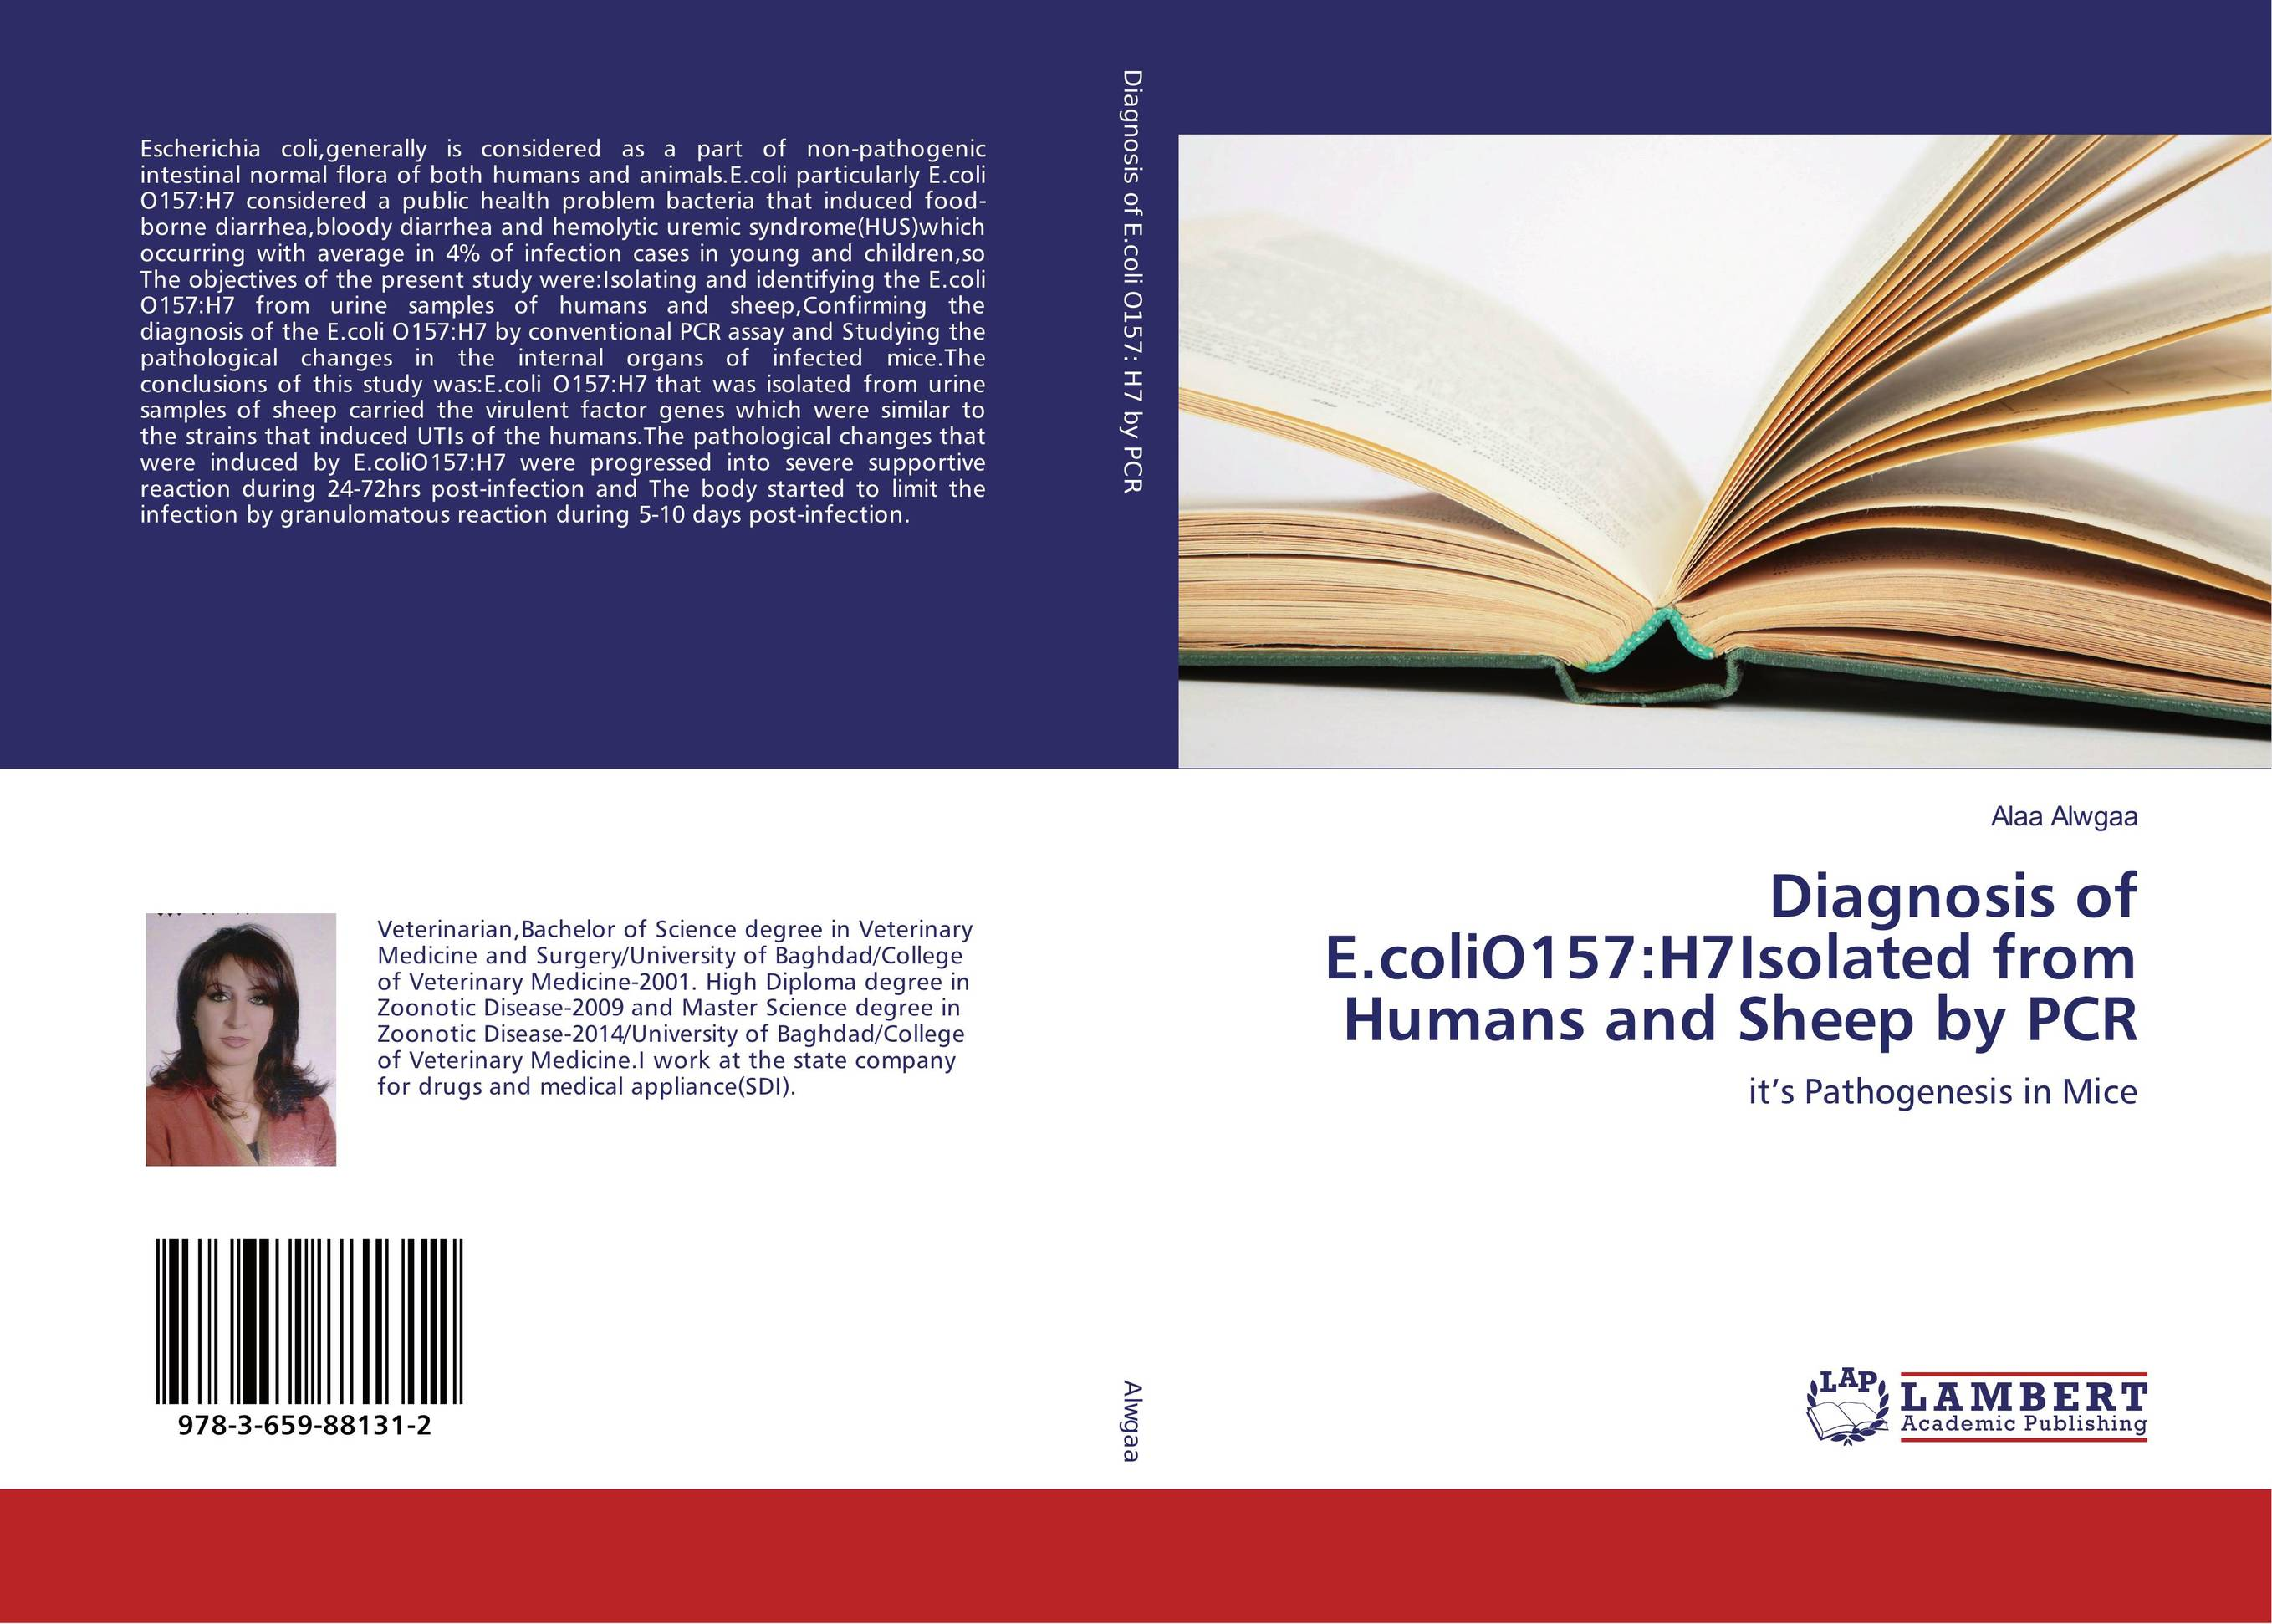 Diagnosis of E.coliO157:H7Isolated from Humans and Sheep by PCR franke bibliotheca cardiologica ballistocardiogra phy research and computer diagnosis